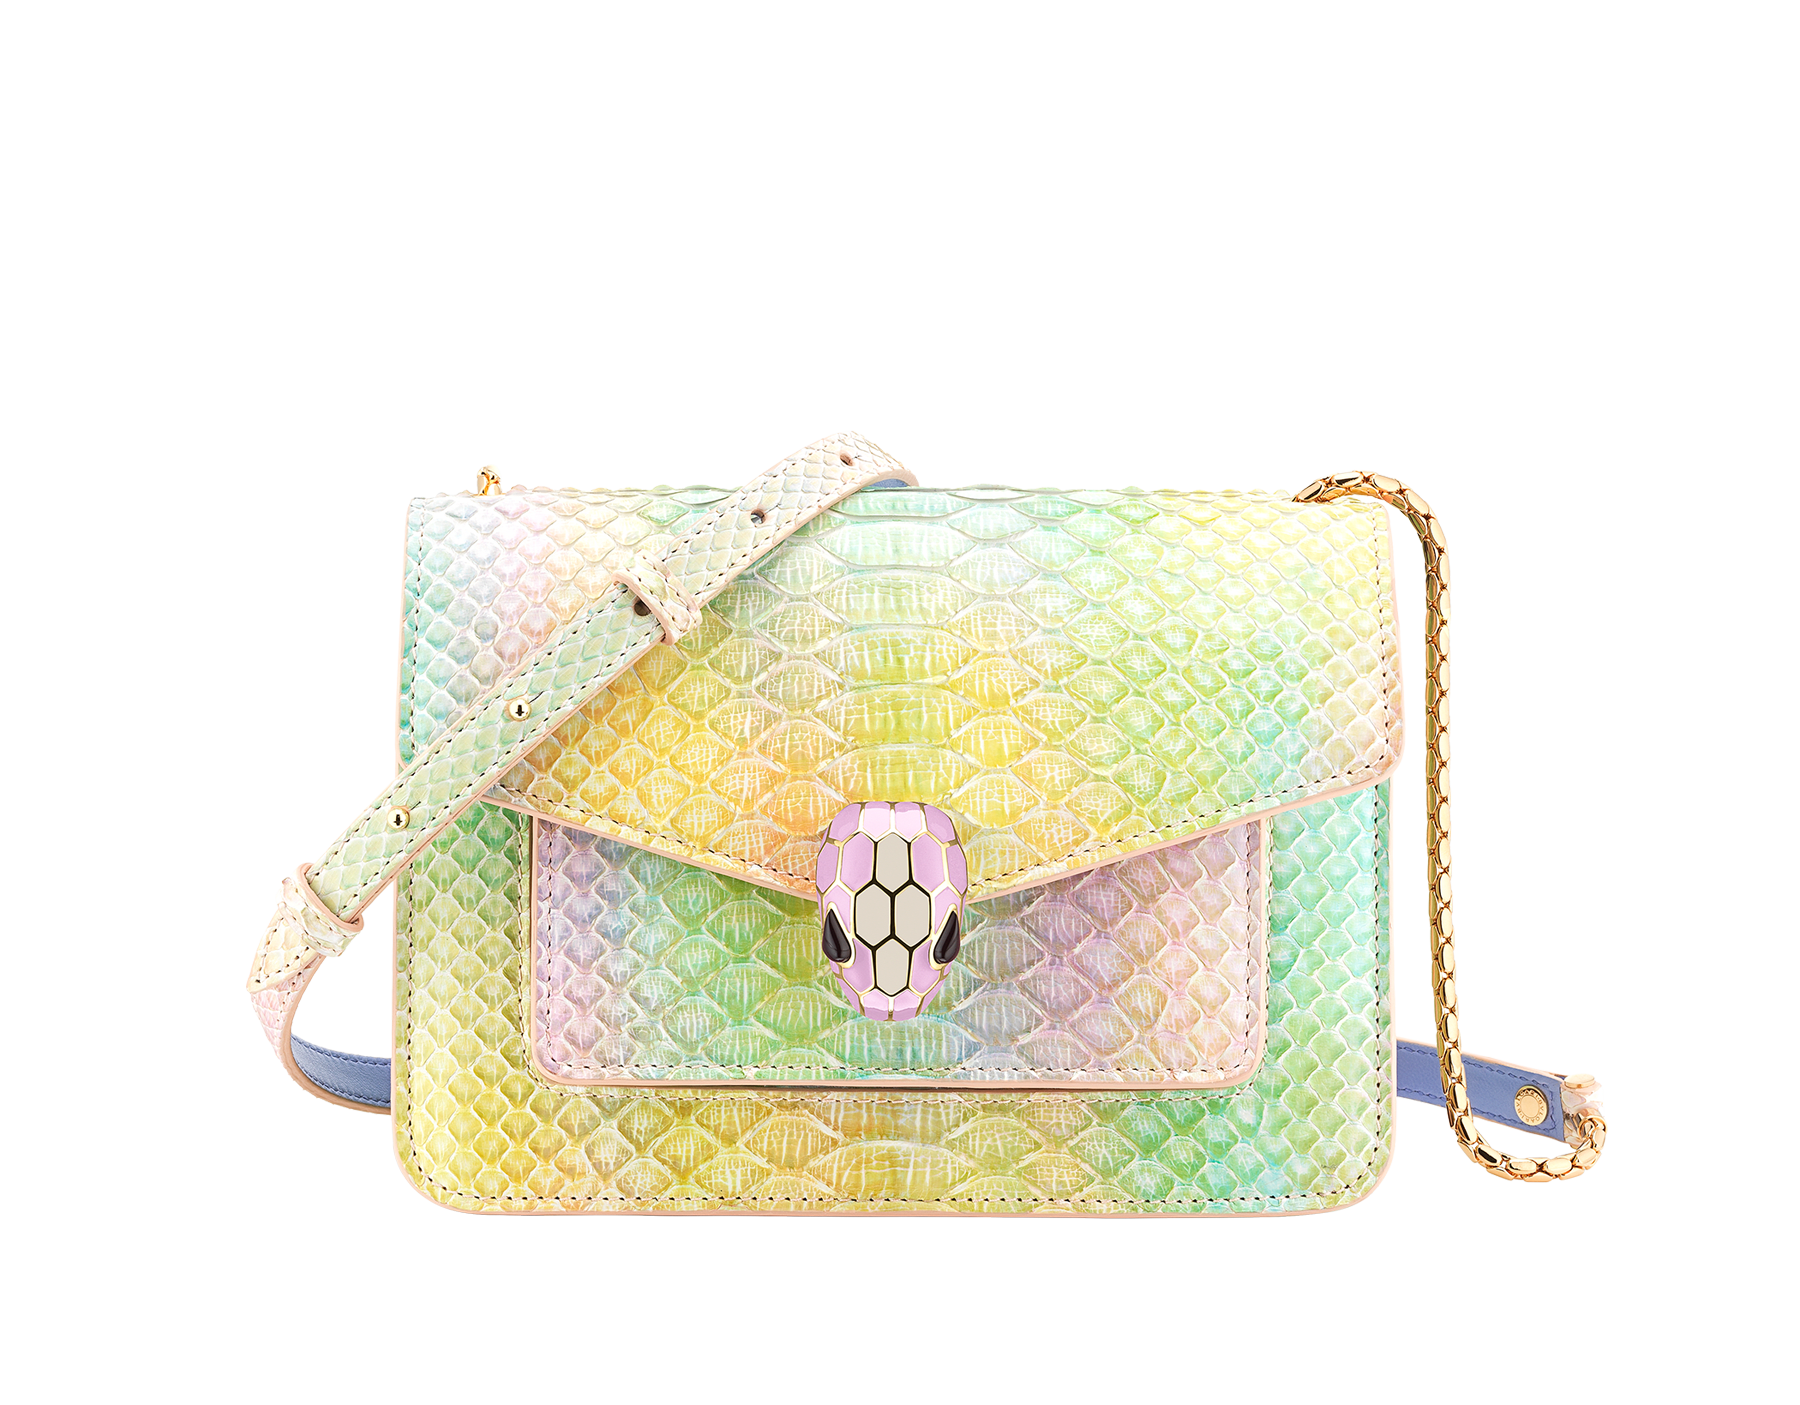 """Serpenti Forever"" crossbody bag in rainbow-coloured ""Spring Shade"" python skin, with Lavender Amethyst lilac nappa leather inner lining. Tempting snakehead closure in gold-plated brass enhanced with lilac and white agate enamel and black onyx eyes. 290567 image 1"